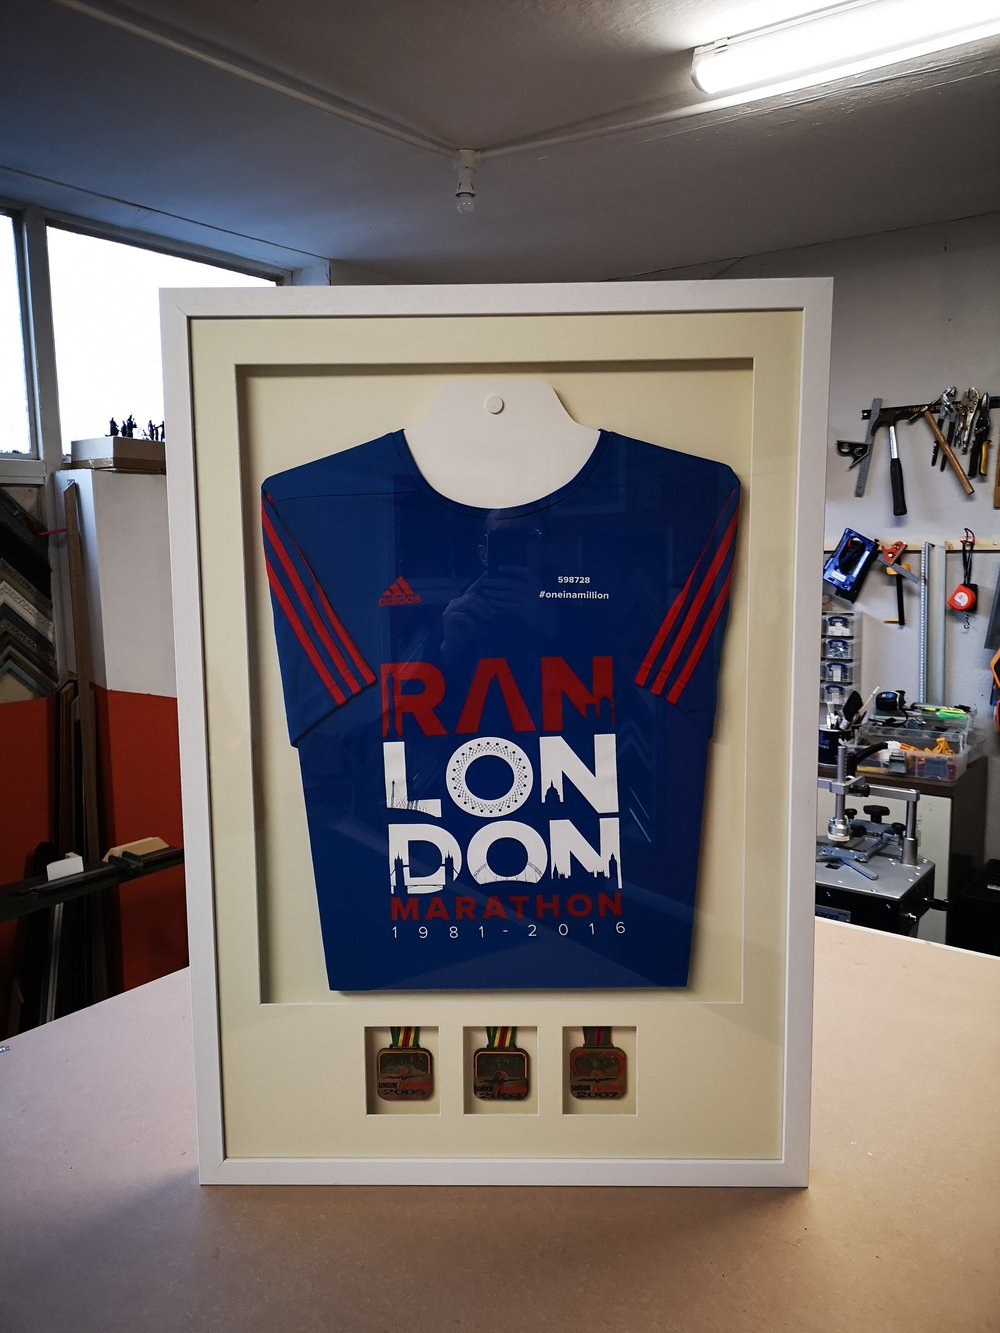 london marathon shirt and medals